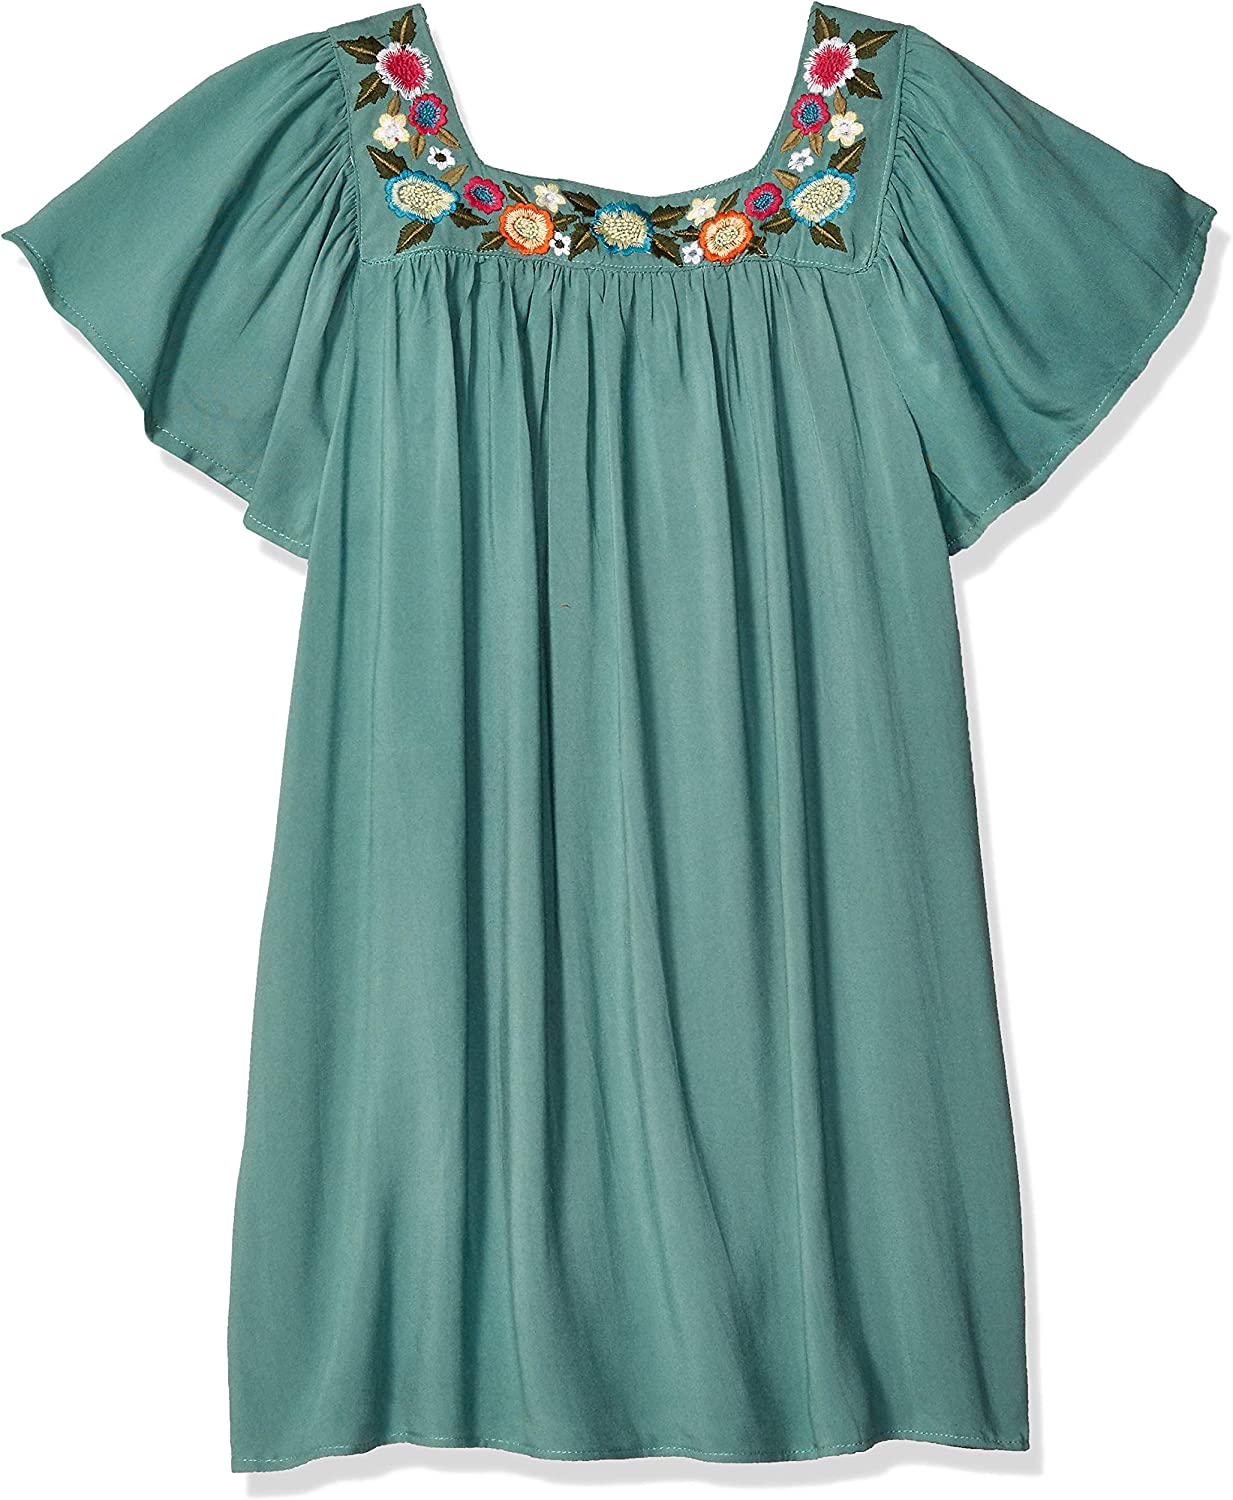 Angie Little Big Girls Embroidered Square Neck Dress